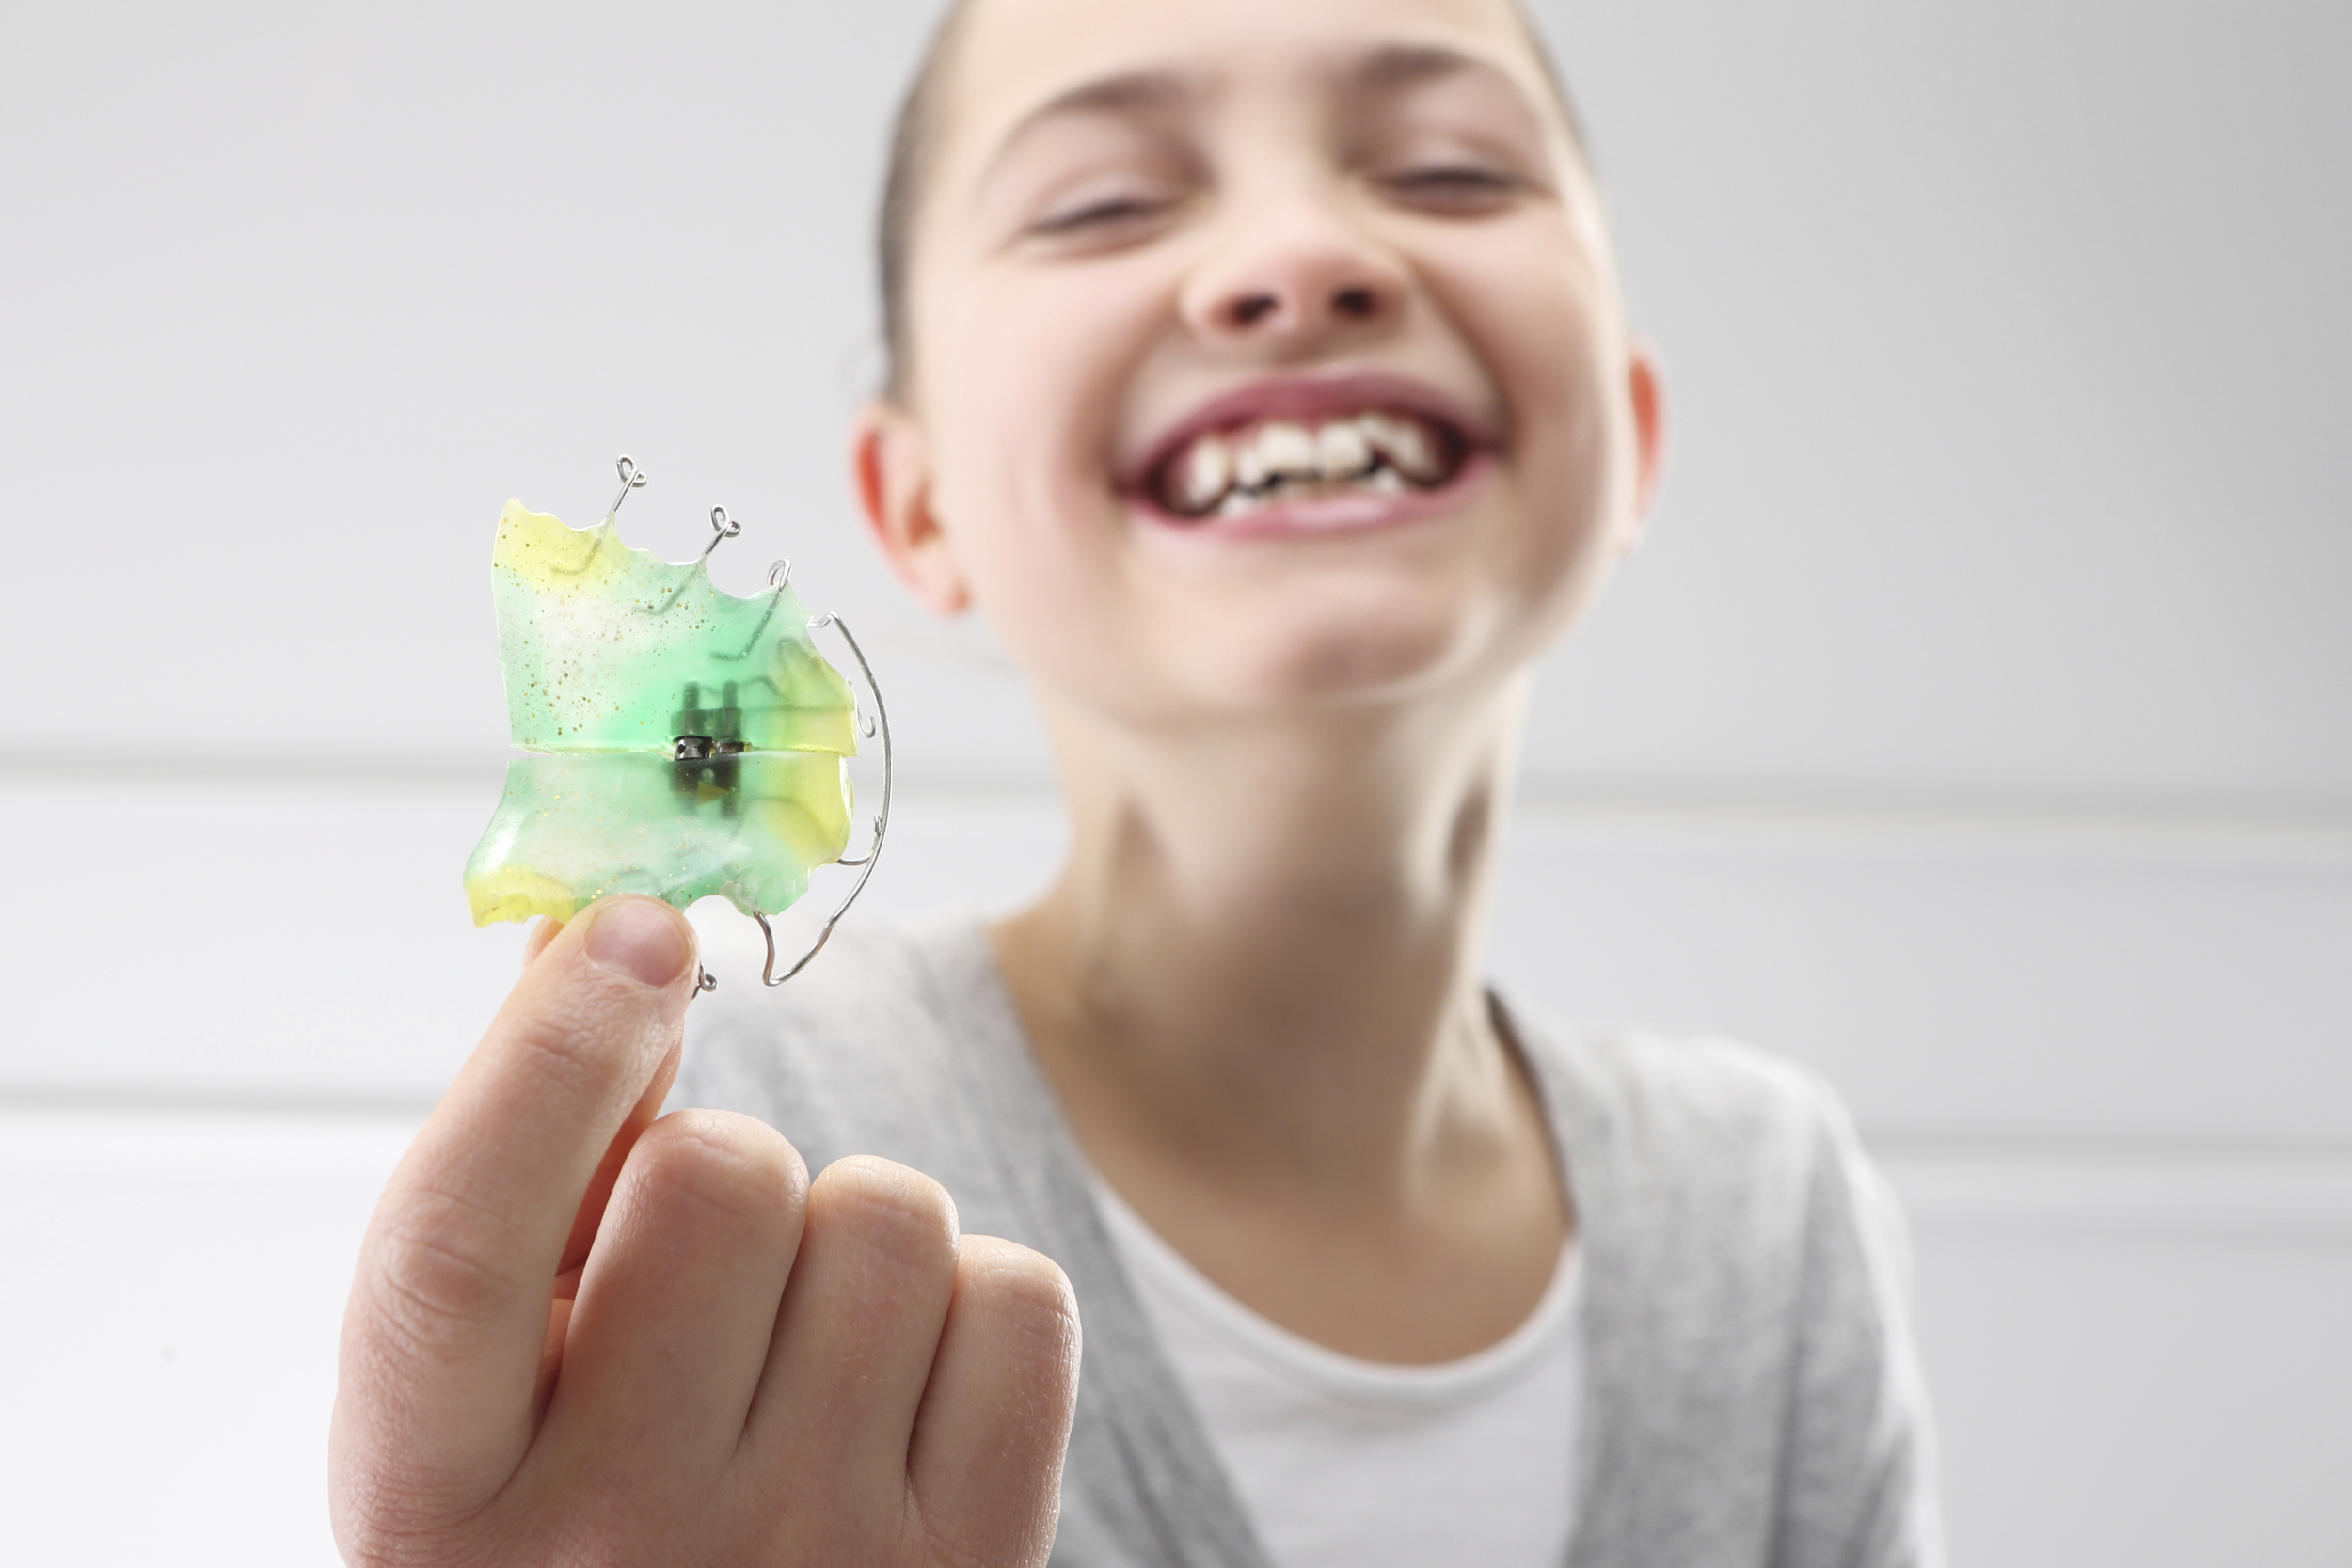 Deciding when to get braces for your child can be a tough decision. Town Center Dentistry in San Diego offers tips to know when children should get braces from an Orthodontist.